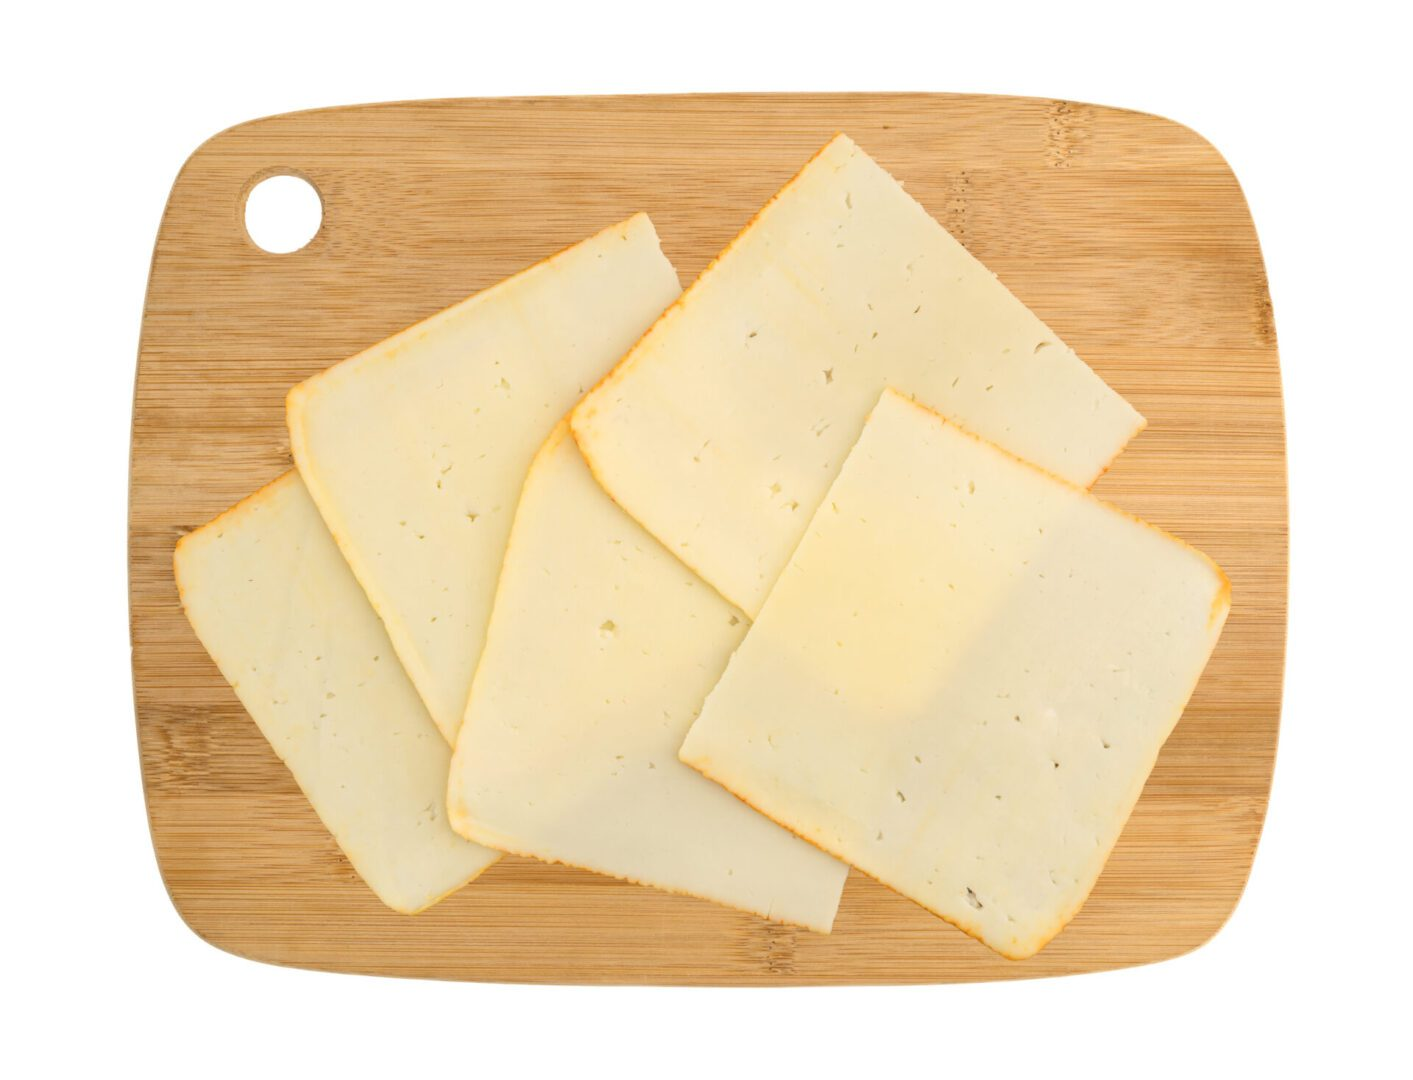 Top,View,Of,Muenster,Cheese,Slices,On,A,Wood,Cutting